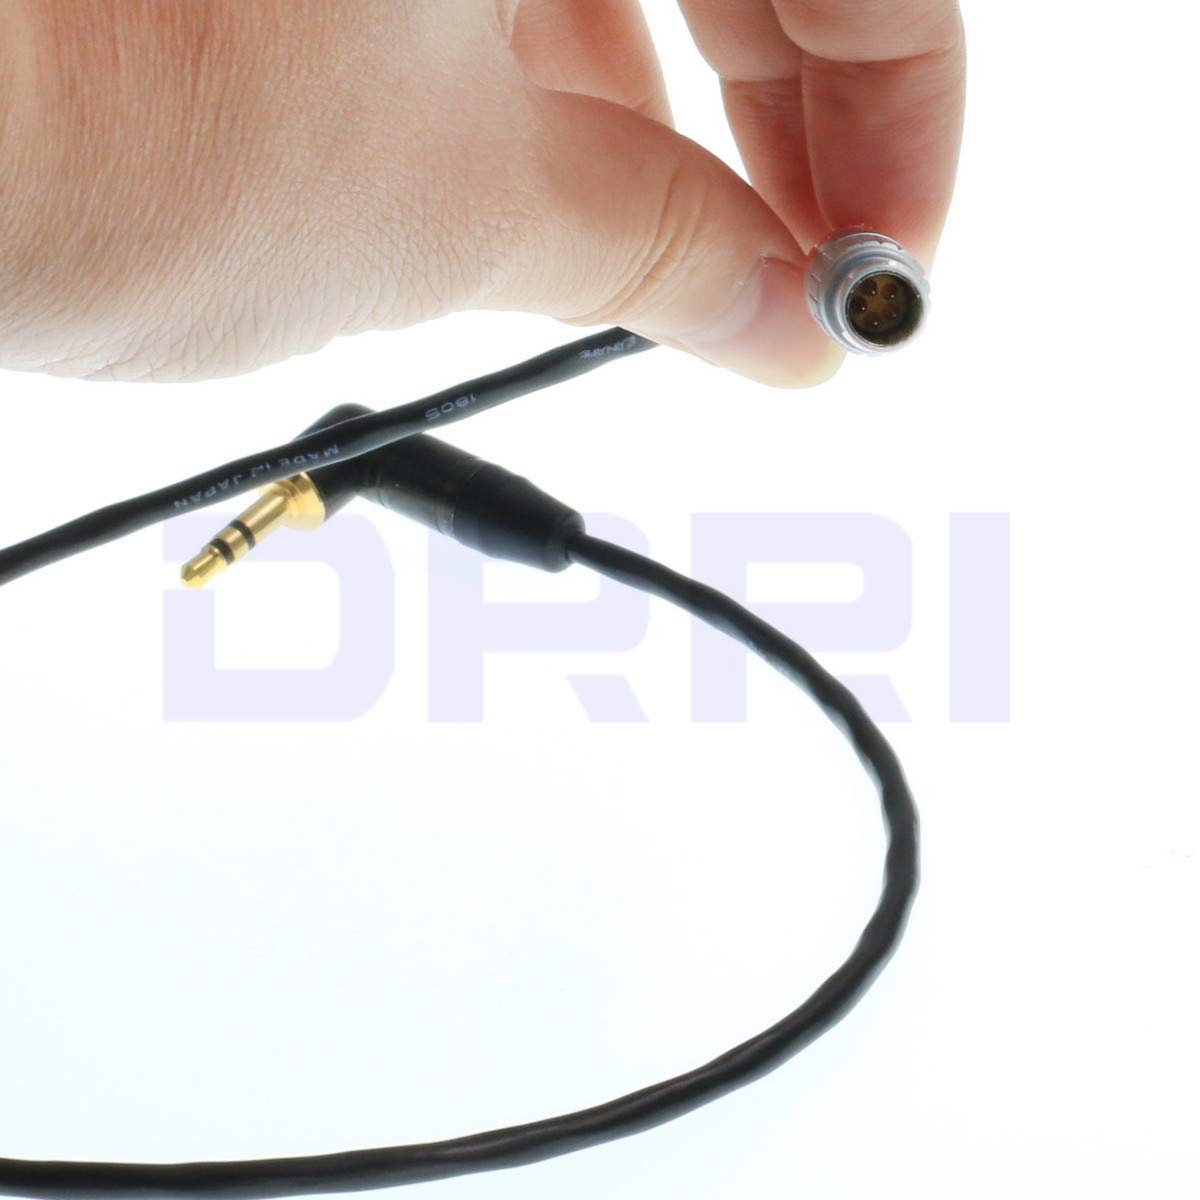 DRRI Tentacle Sync Adapter Cable for 5Pin to 3.5mm Jack Tentacle Timecode Generator